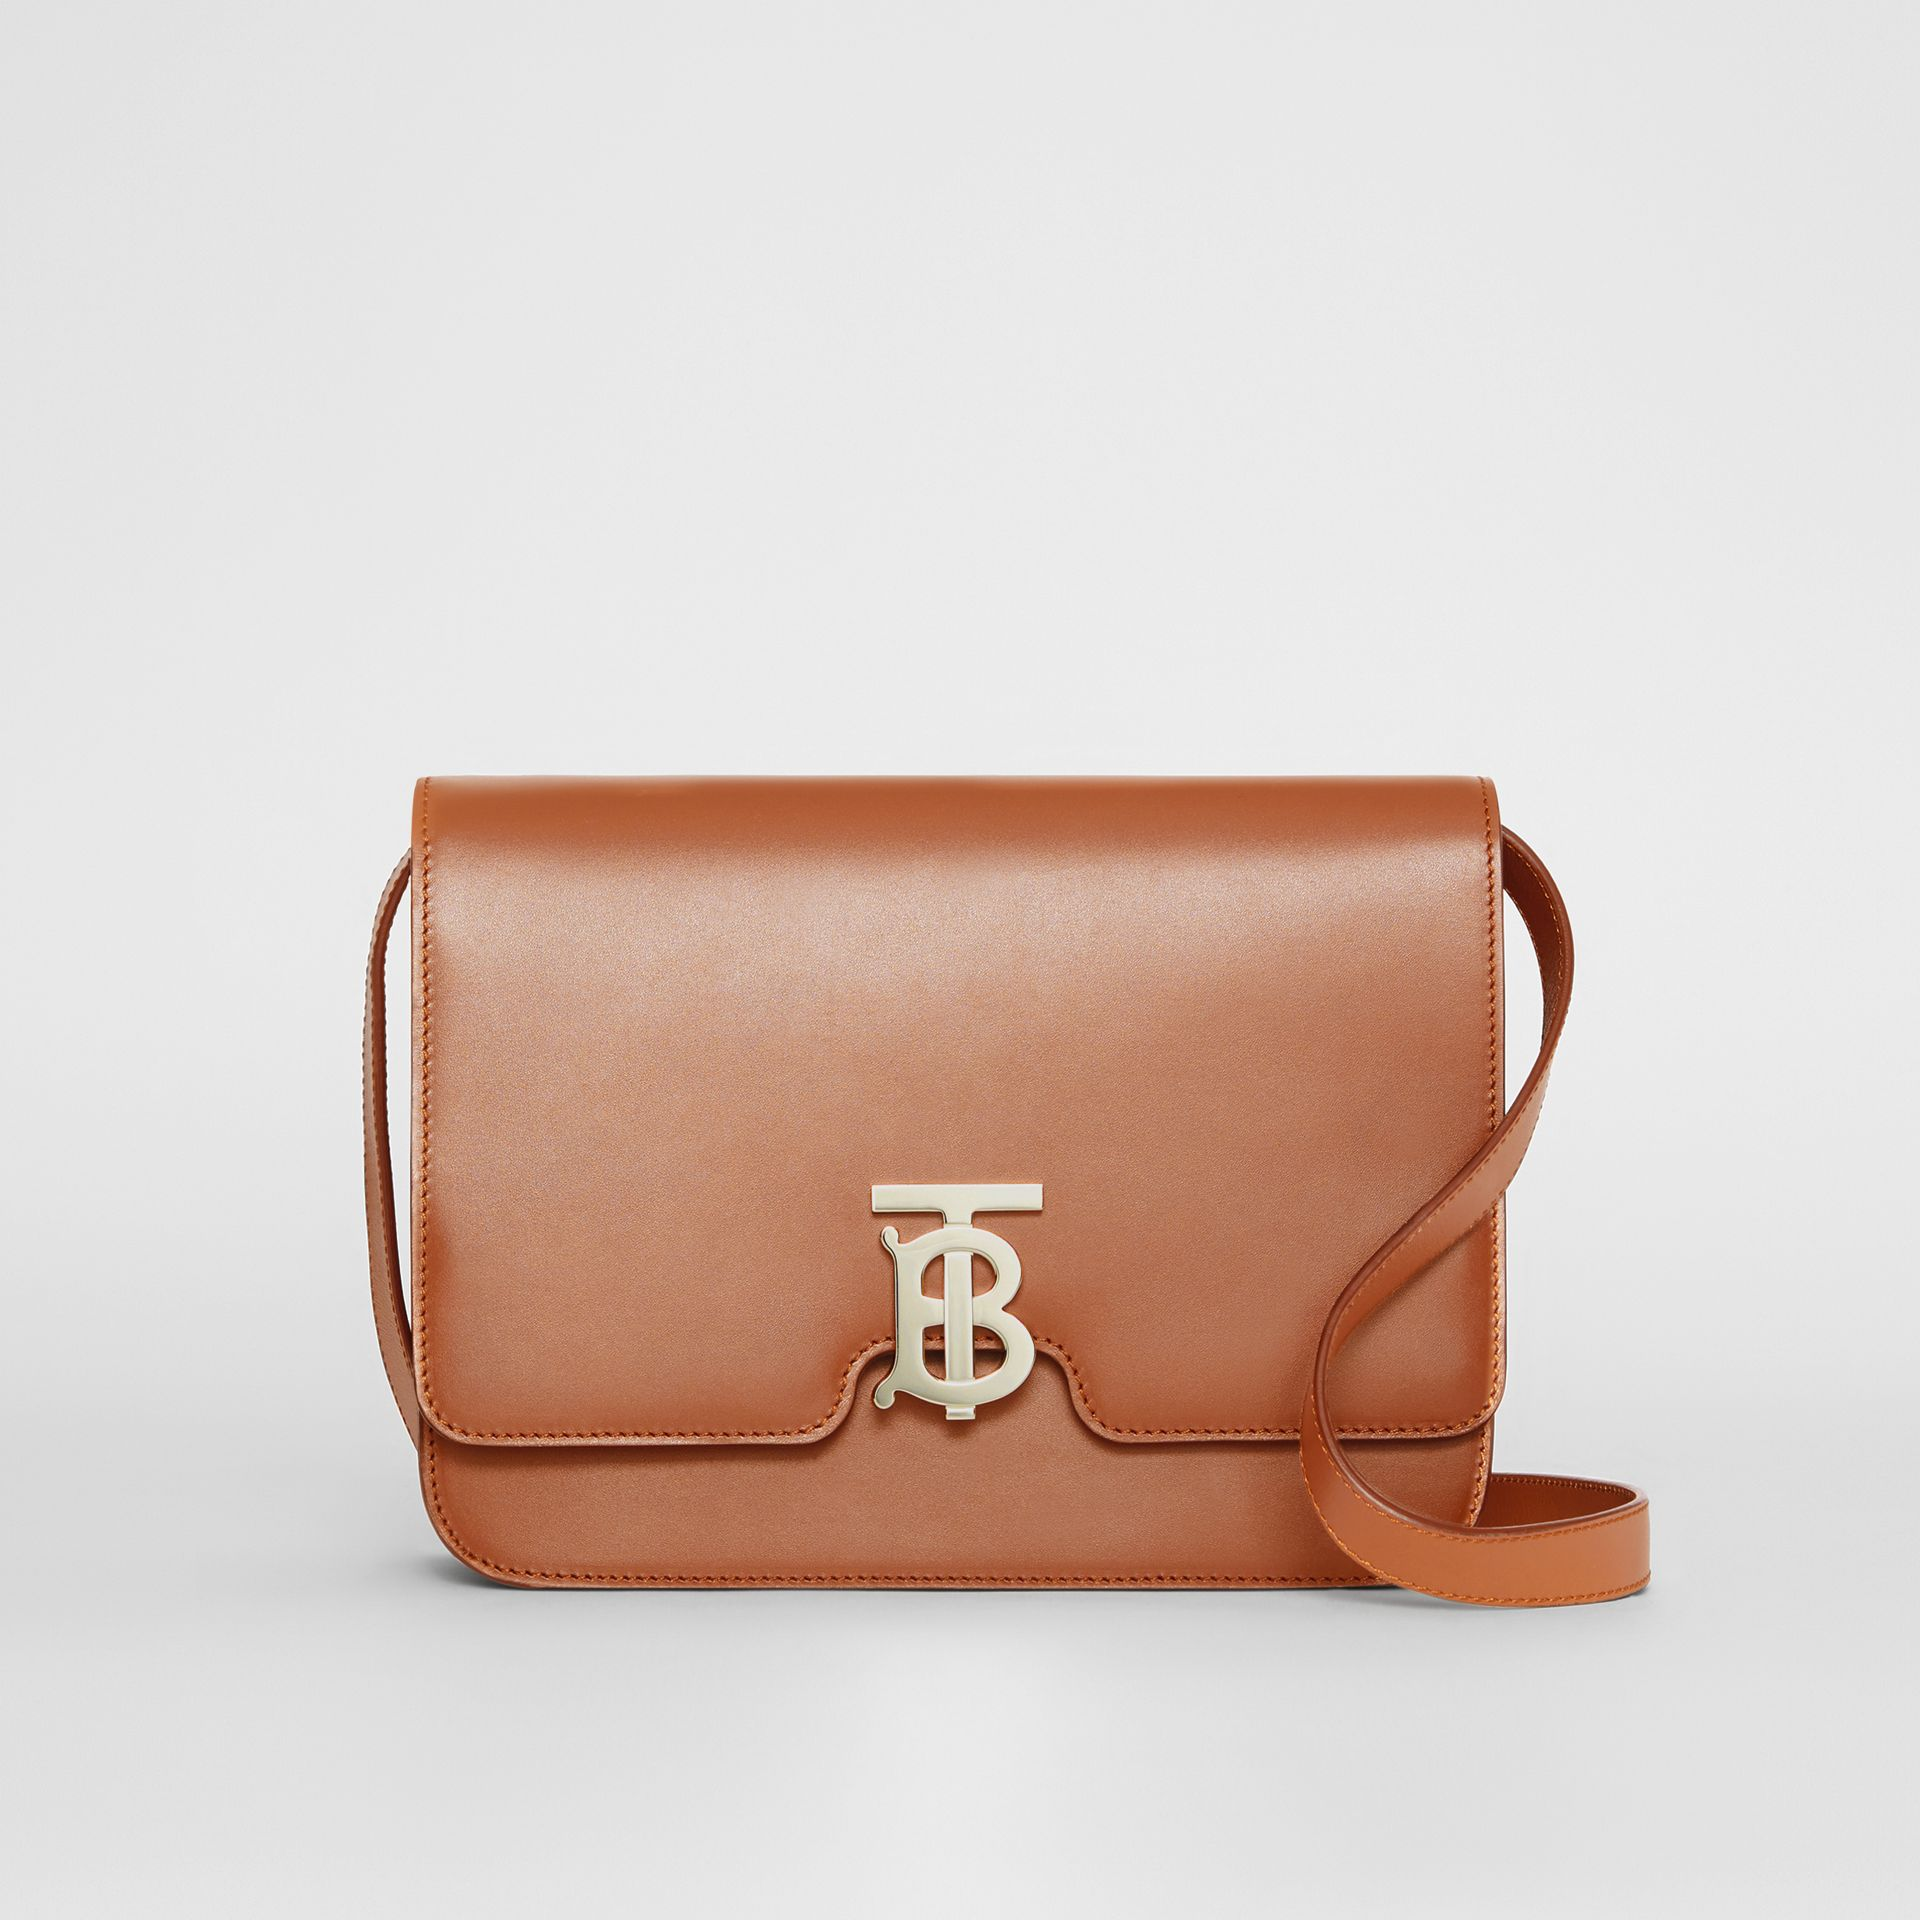 Medium Leather TB Bag in Malt Brown - Women | Burberry United States - gallery image 0